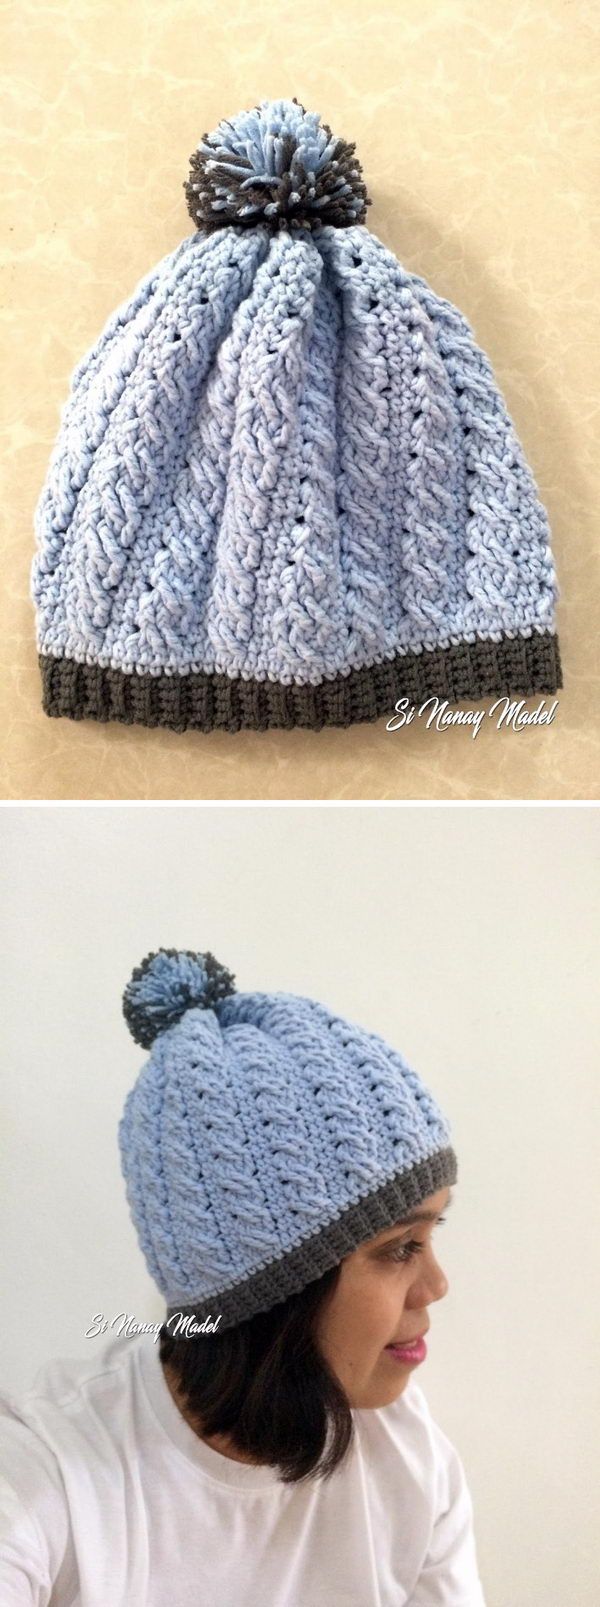 Crochet Cable Braid Stitch Hat.